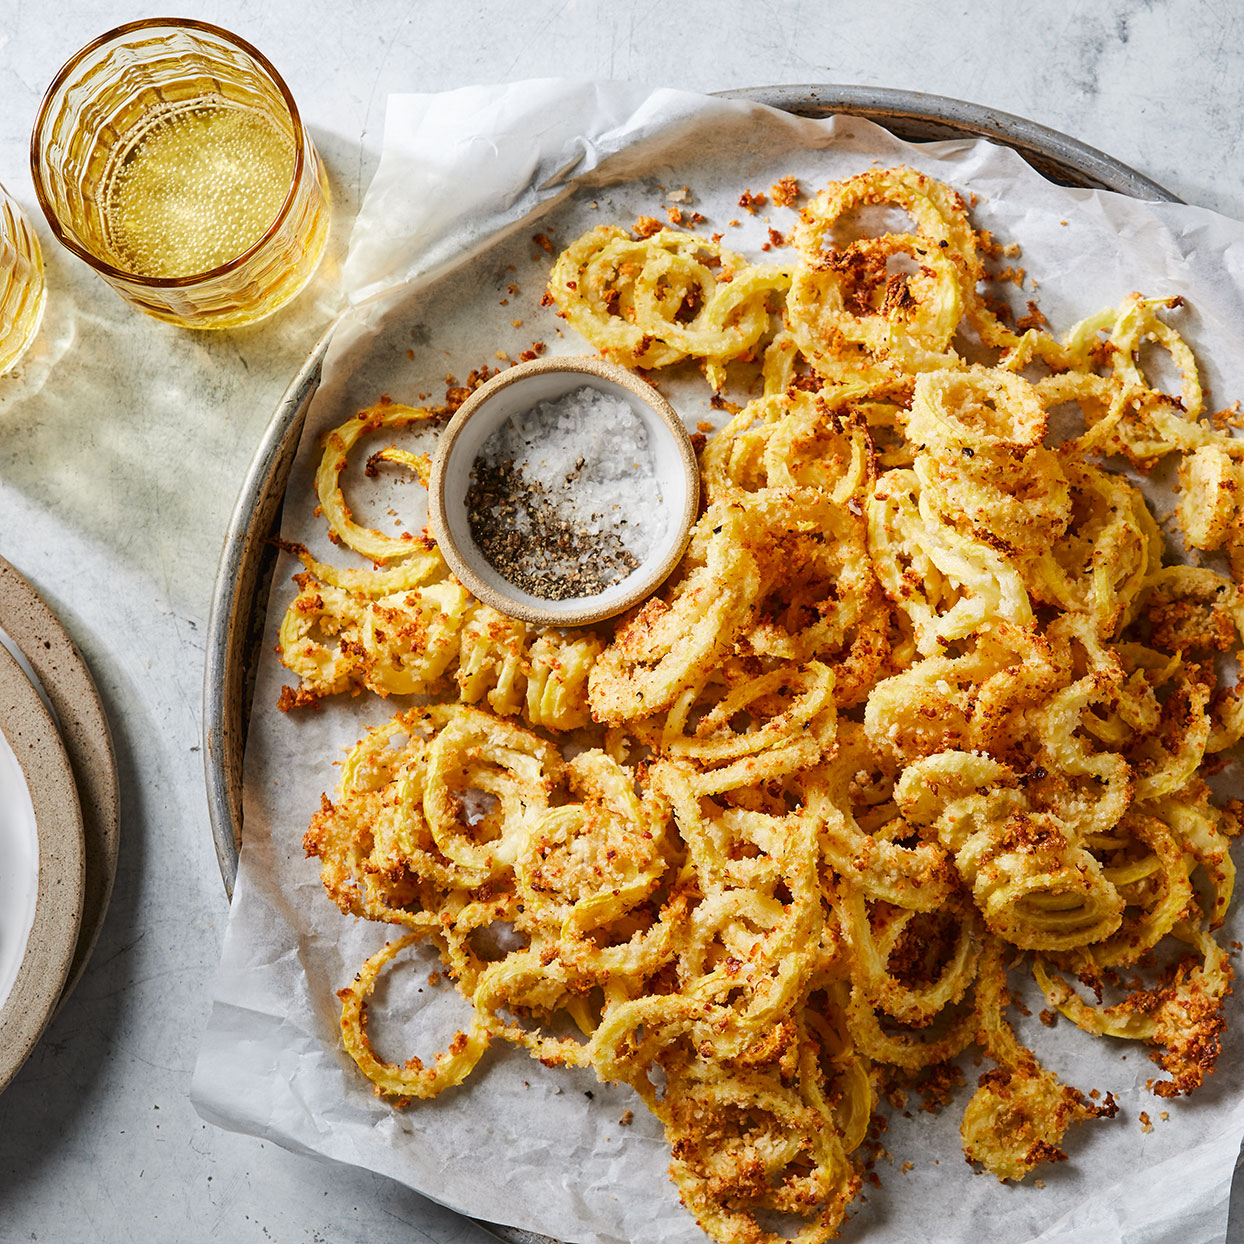 Baked Garlic-Lemon Summer Squash Curly Fries Trusted Brands